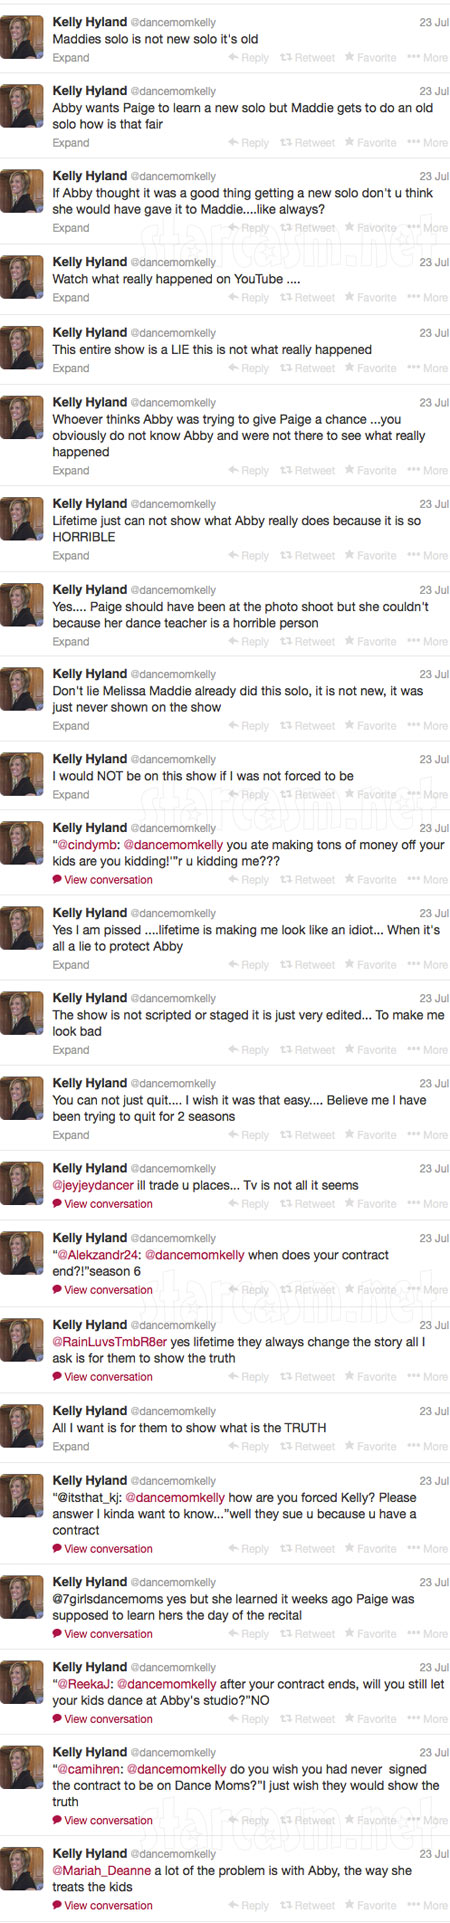 Dance Moms Kelly Hyland Abby Lee Miller Twitter attack